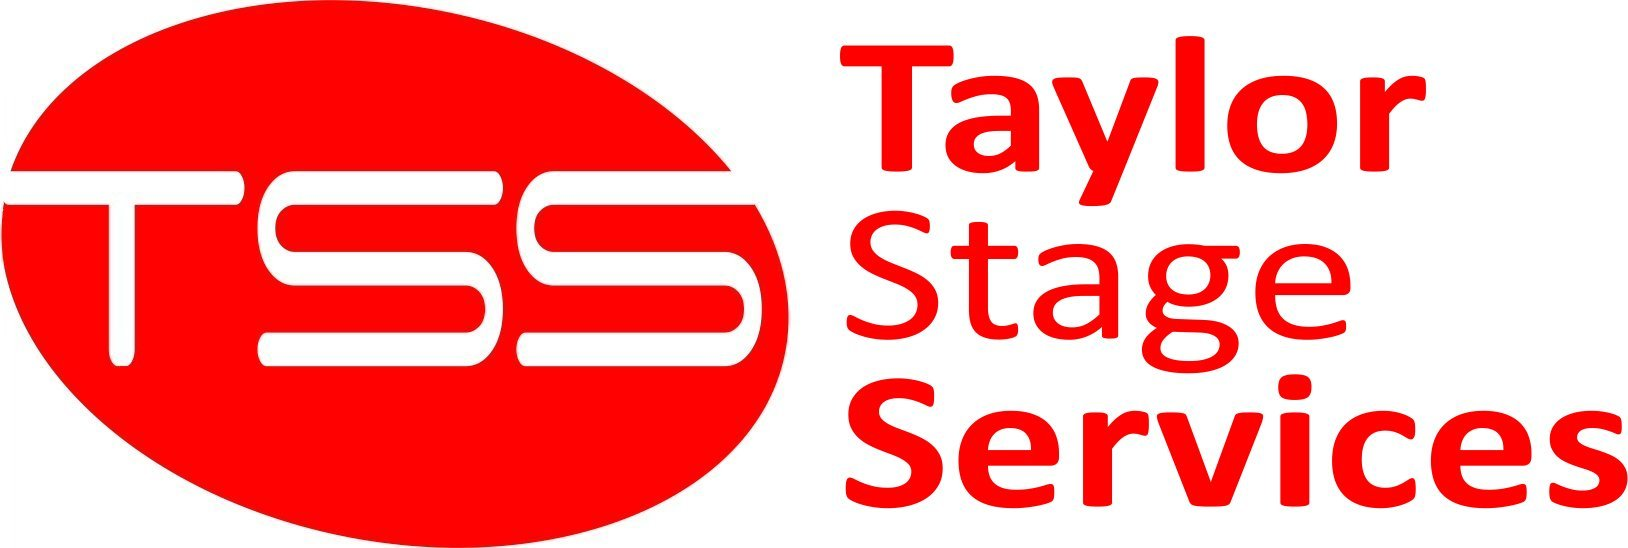 Taylor Stage Services